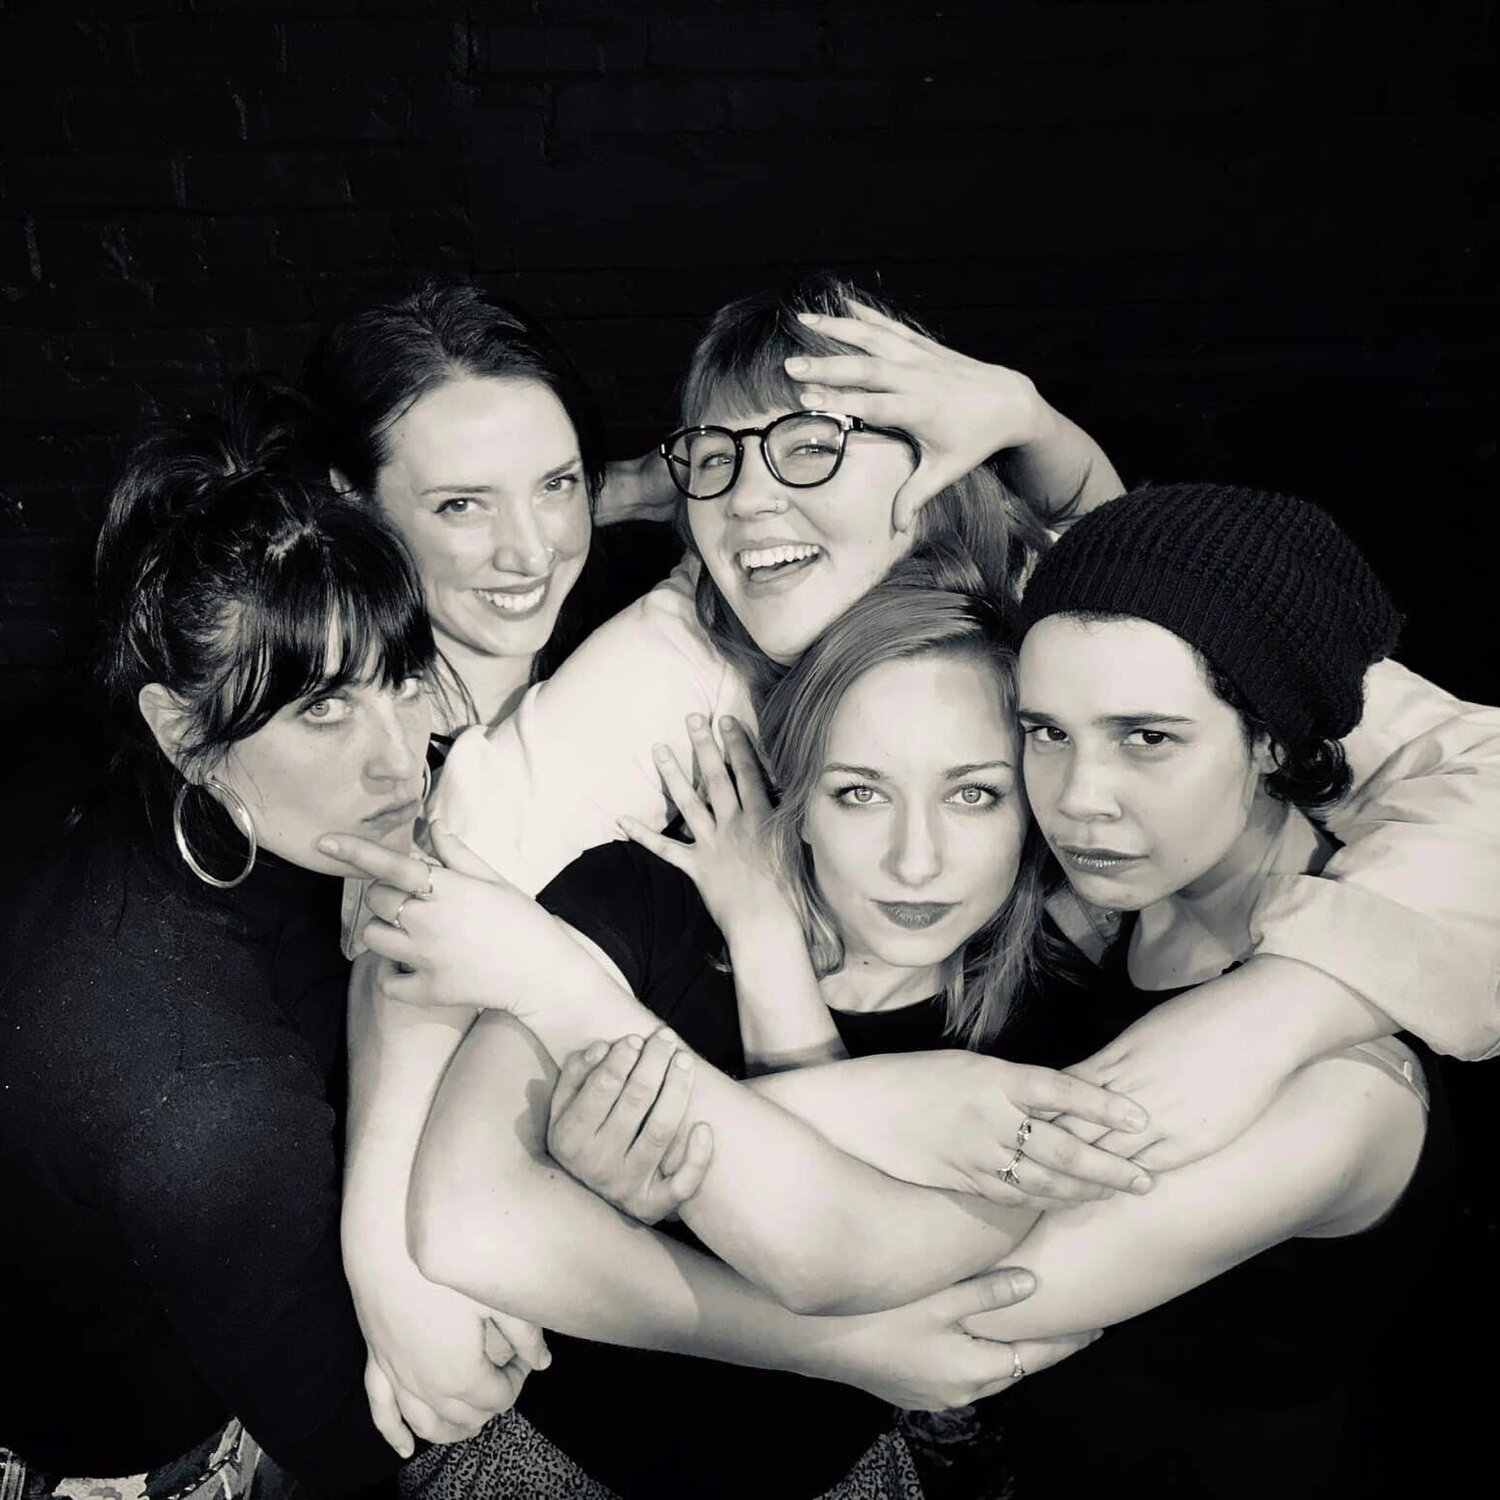 Mom Jeans is an all-female improv troupe from Portland, Oregon. We've have been performing together for three years at almost every improv location in town, including residencies at Kickstand Comedy, where we produce a monthly show. Mom Jeans displays a powerful ability to walk the line of the real and surreal, the absurd and the grounded. We follow the show wherever it goes with genuine and earnest enthusiasm, and we have absolute trust in each other that shows on stage. Plus, we're five bad-ass ladies.